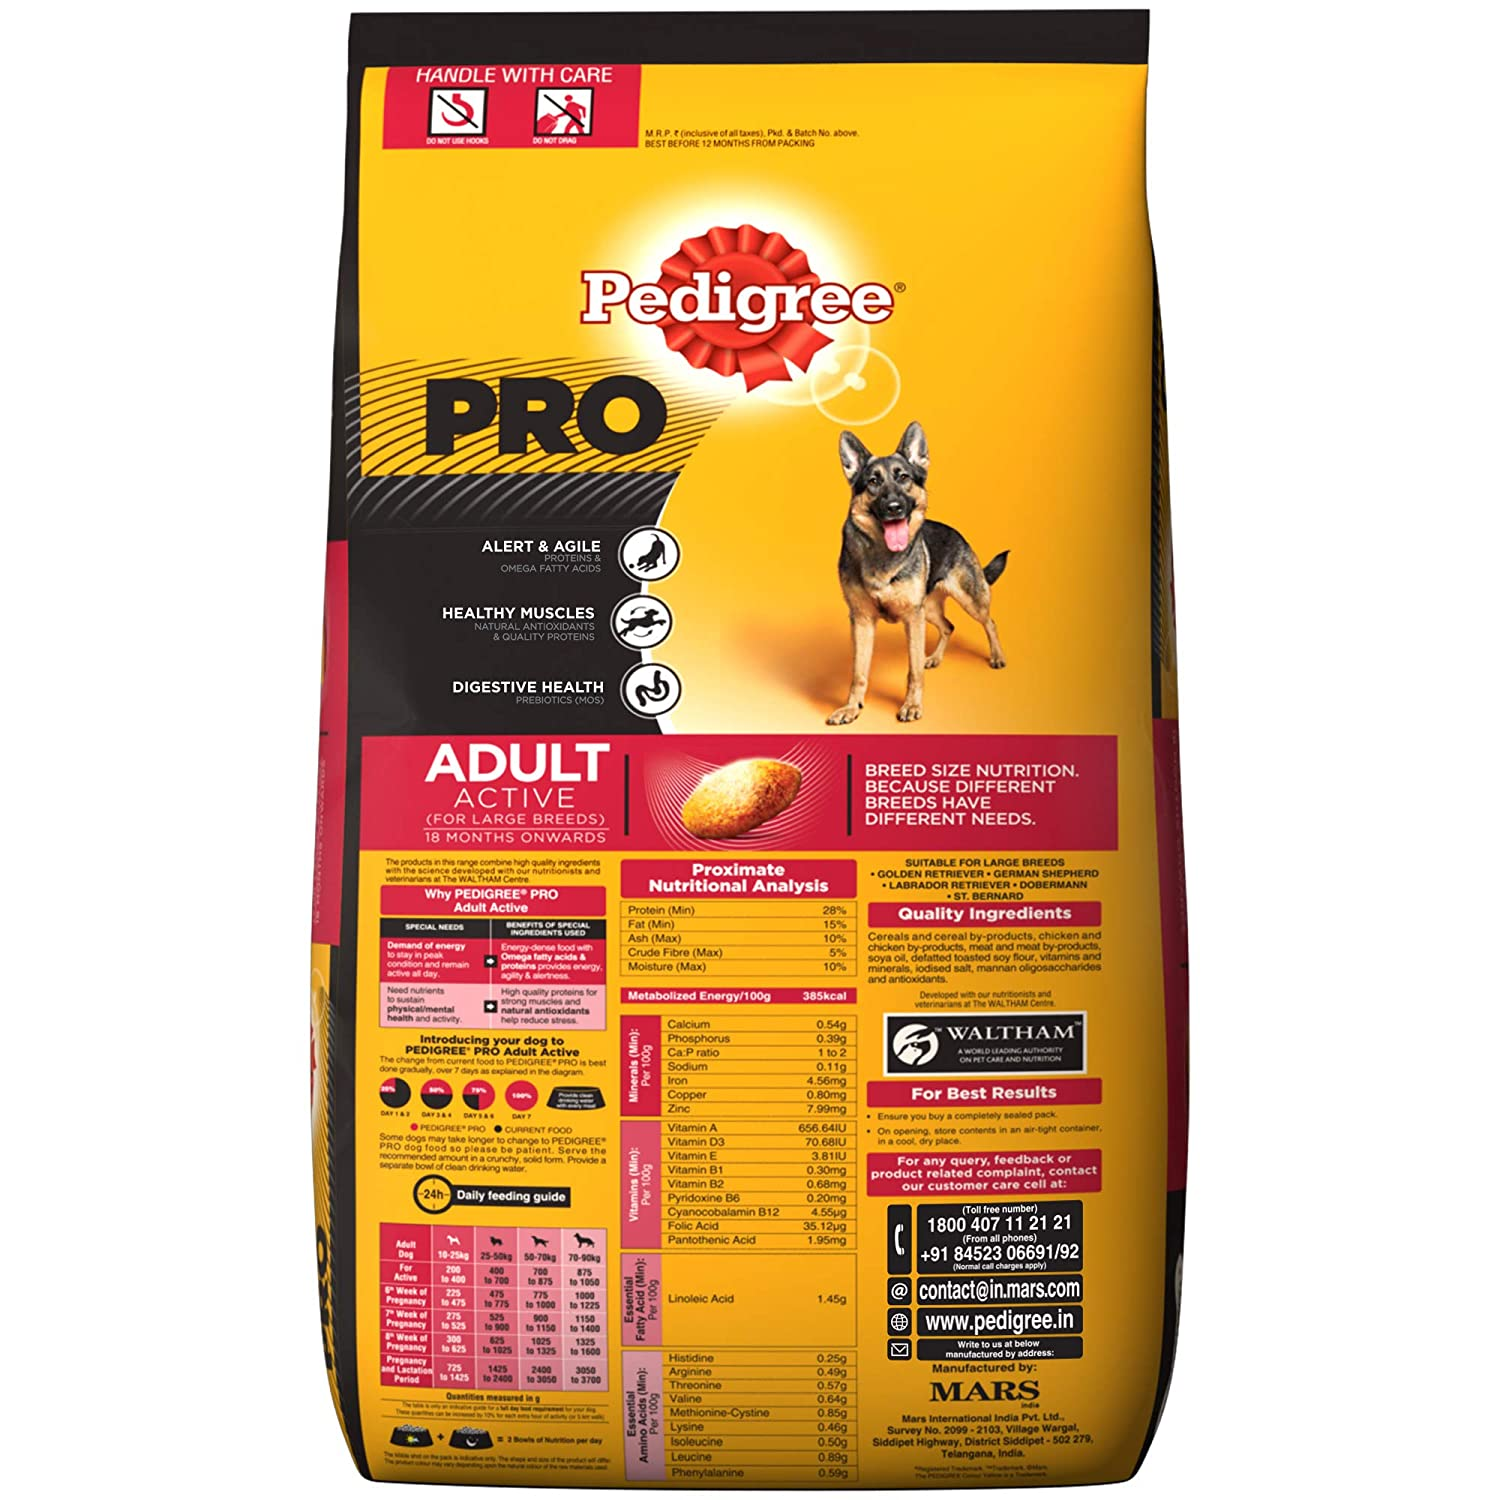 Pedigree PRO Expert Nutrition Active Adult Large Breed Dogs (18 Months  Onwards) Dry Dog Food 10kg Pack